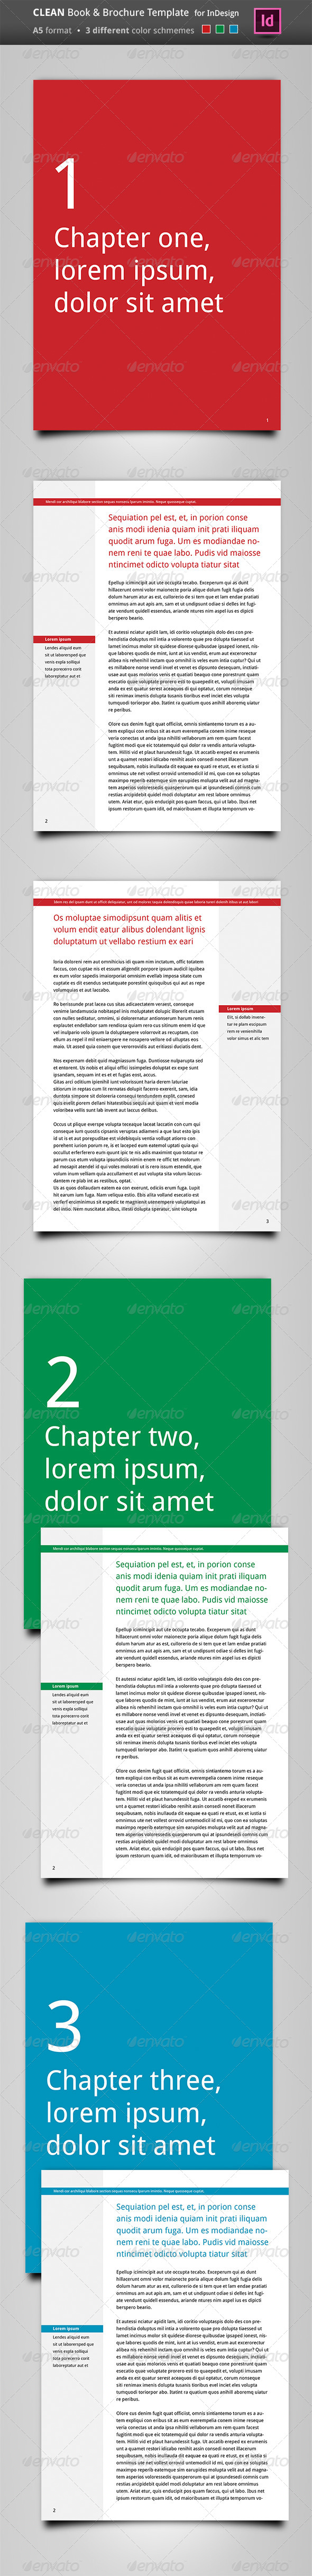 Clean Book & Brochure Template - Brochures Print Templates